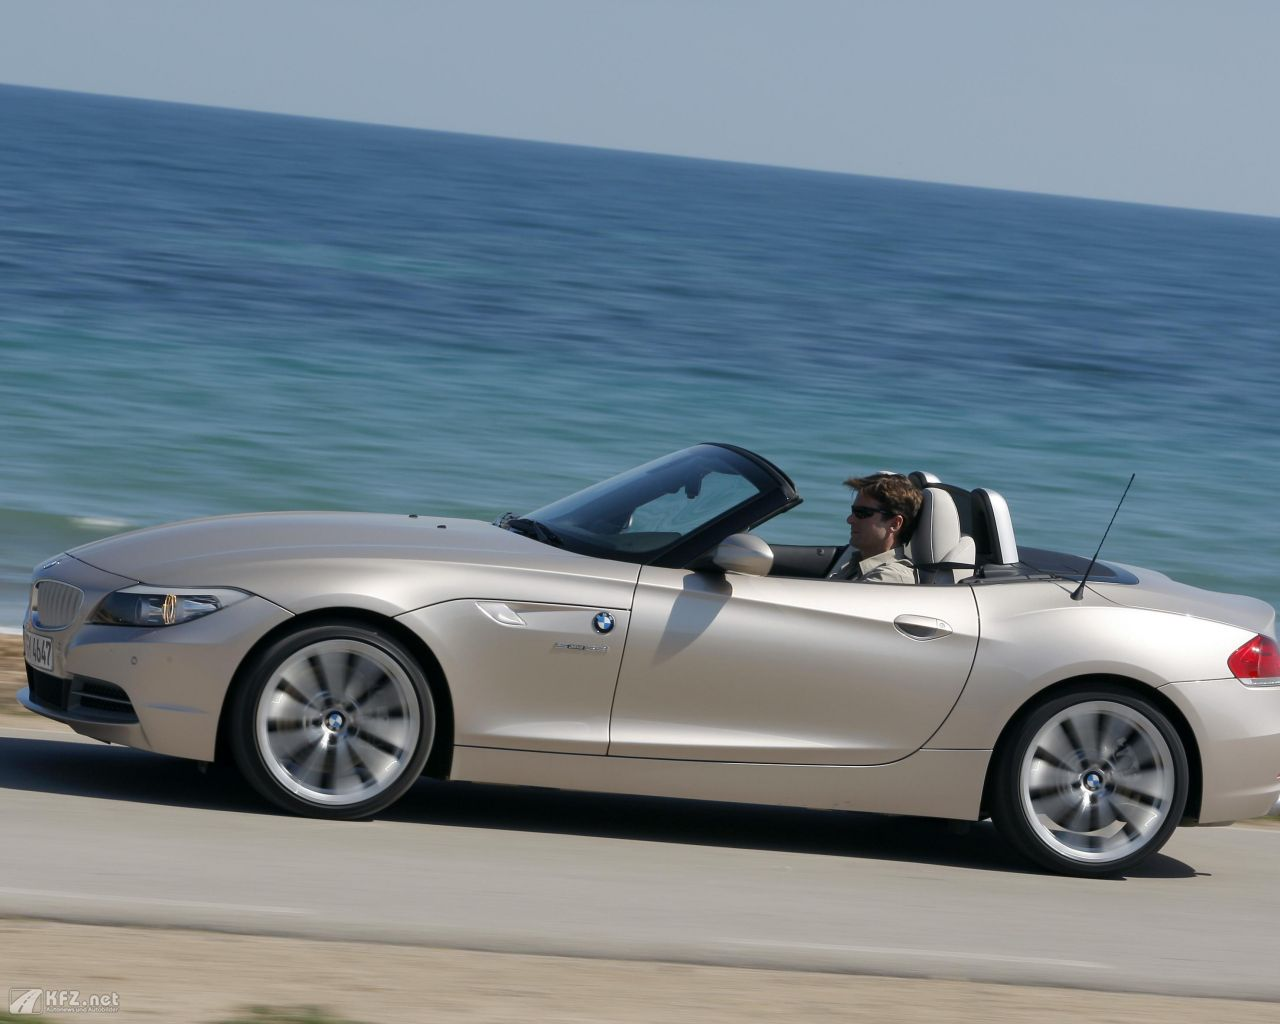 Bmw Z4 With Hardtop Hardtop Roof On Bmw Z4 Roadster